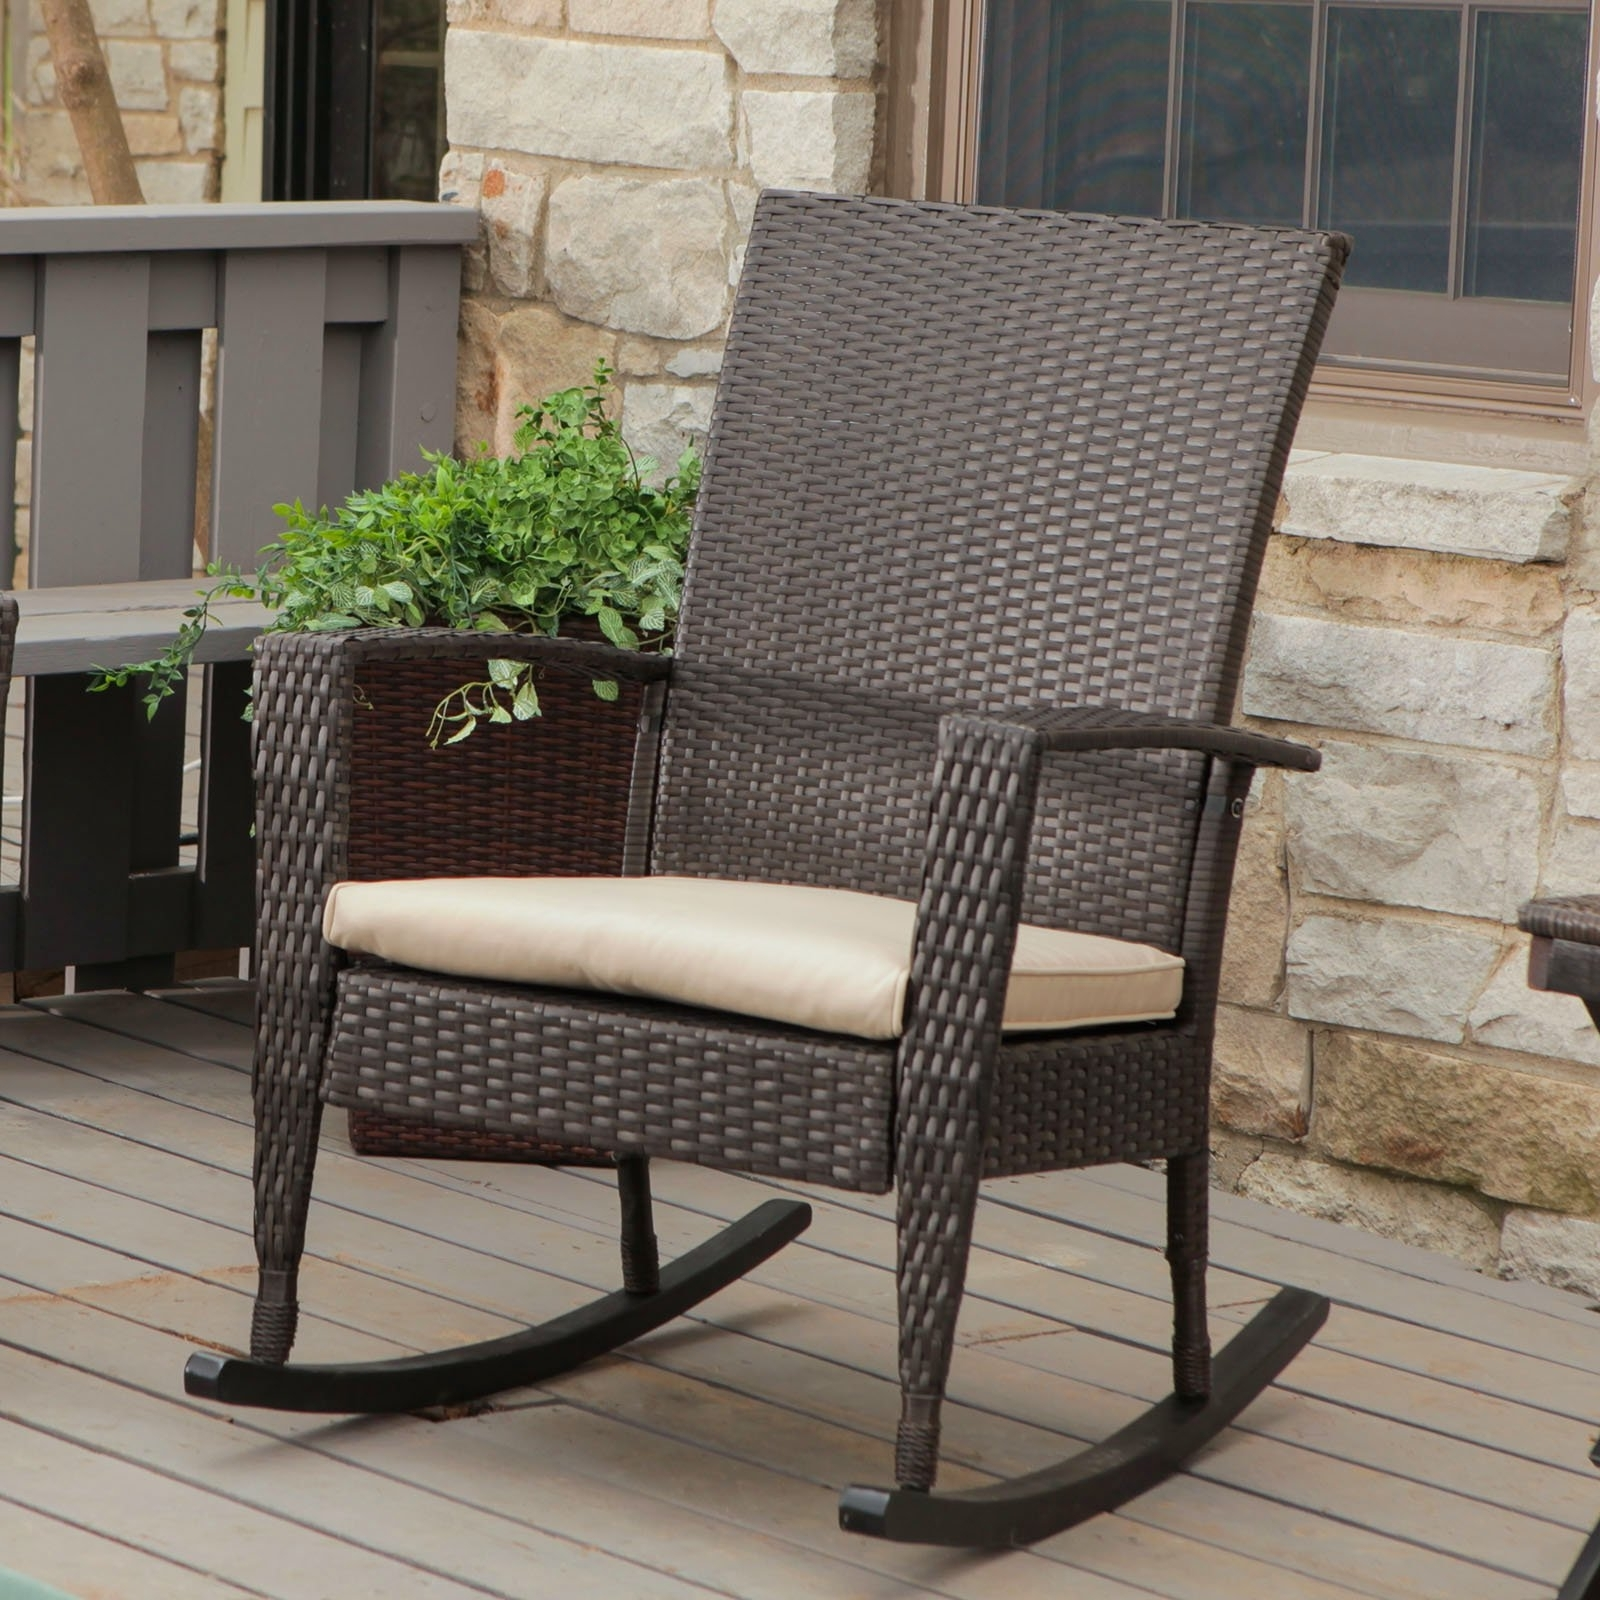 Preferred Rocking Chairs For Outside Throughout Decorating Modern Lawn Chairs Modern Balcony Furniture Modern Patio (View 2 of 15)